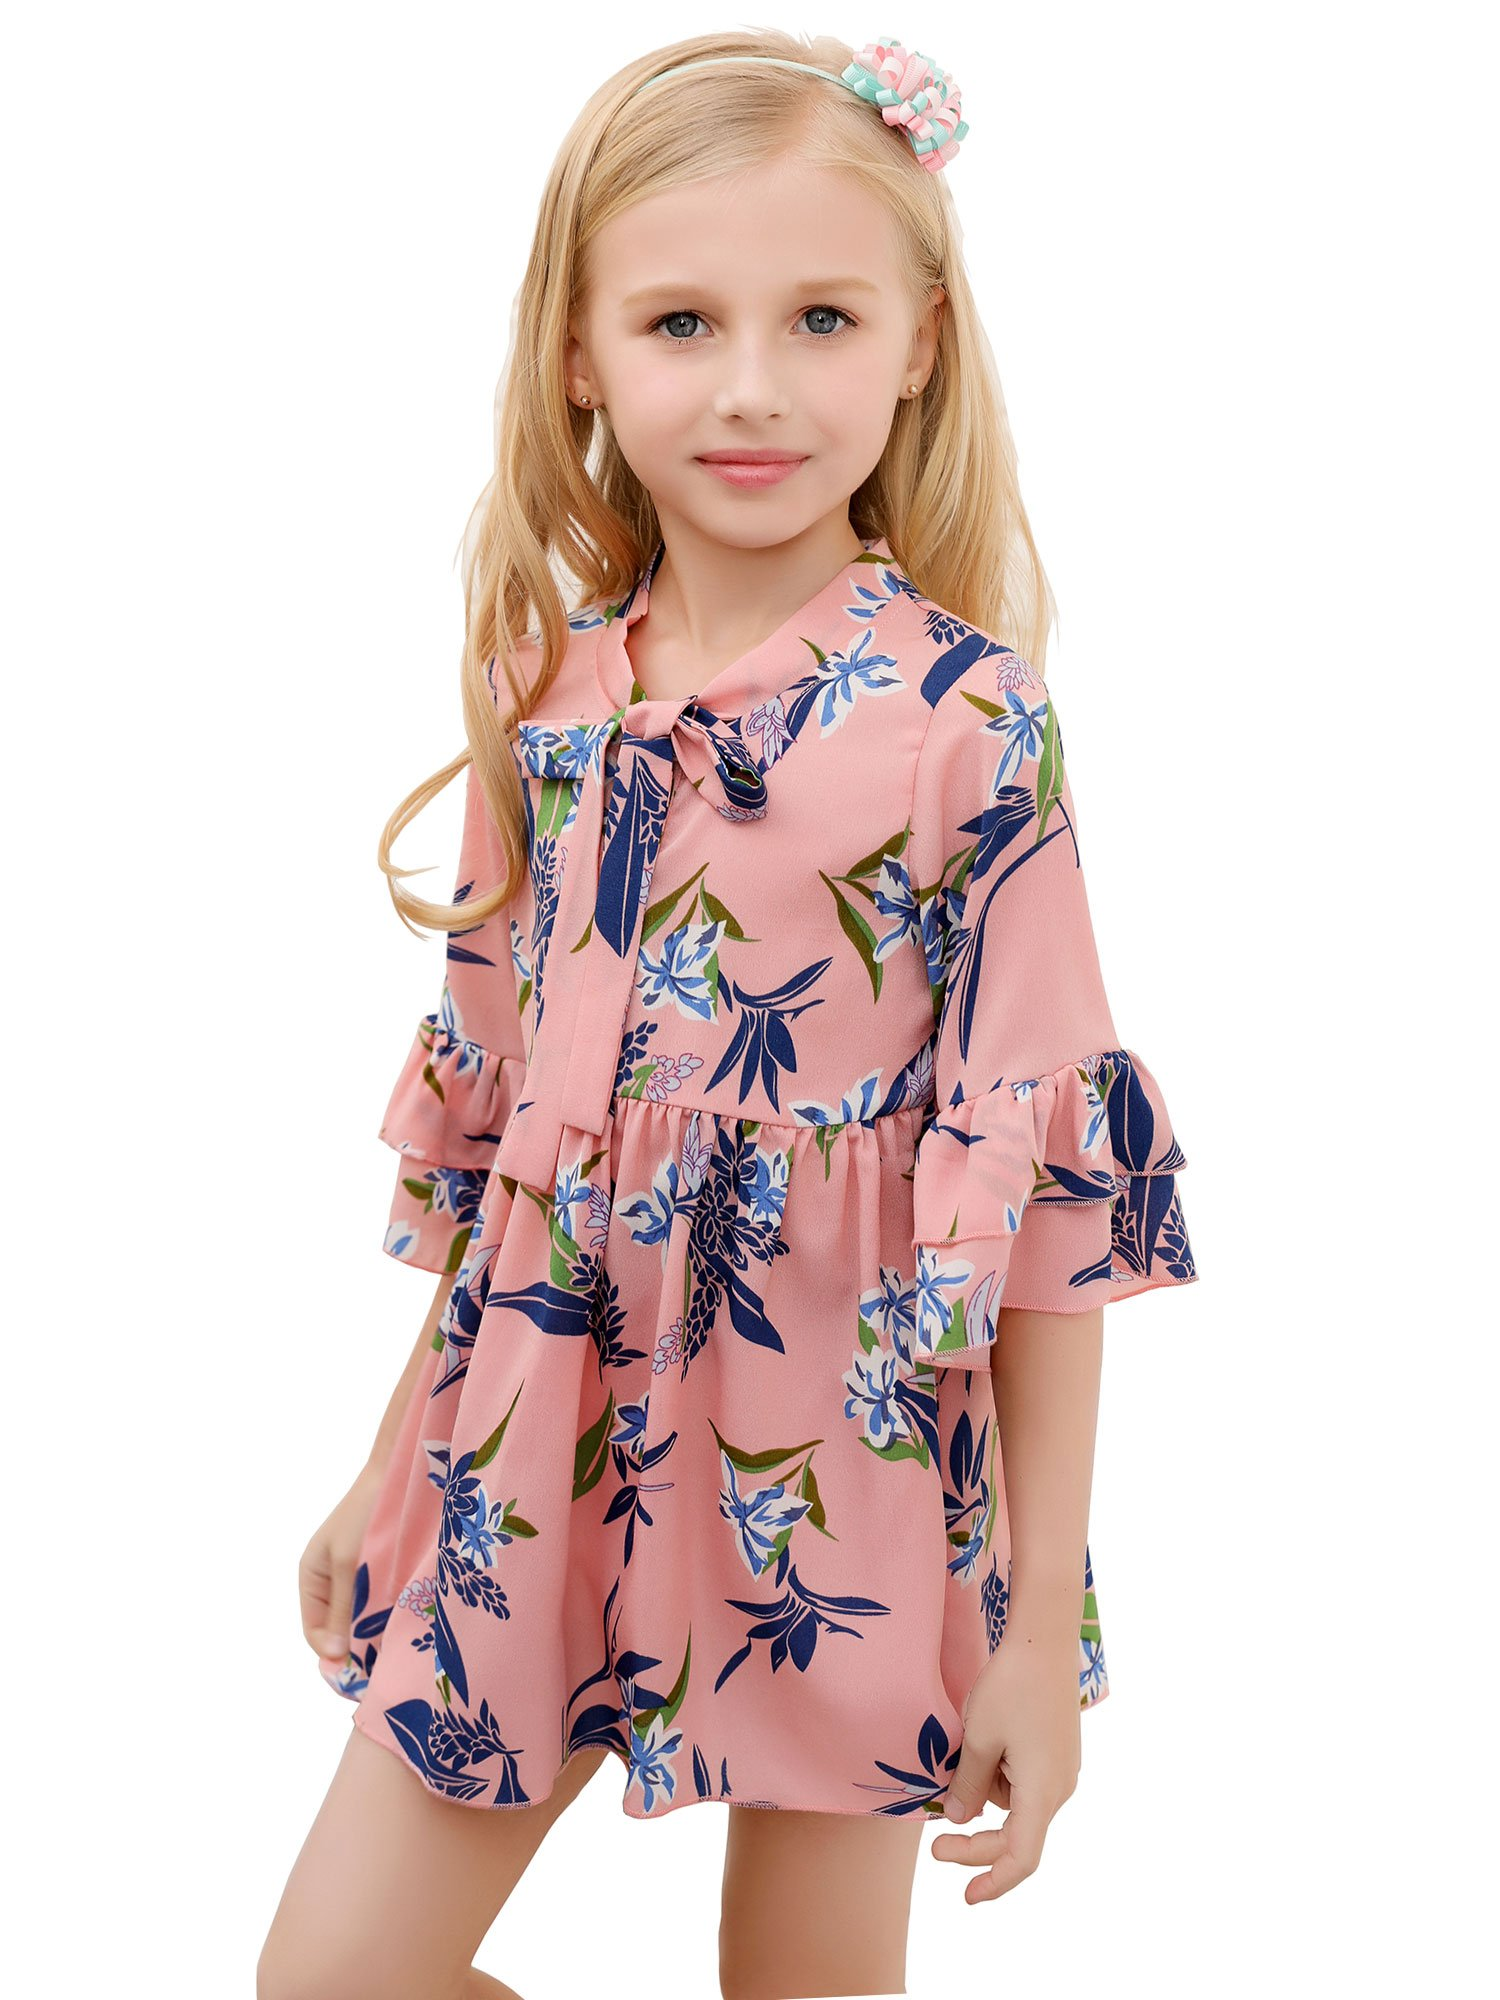 AuroraBaby Summer Girls Floral Chiffon Petal Sleeve Dresses Casual Tie Printing Pink Dress for Girls Size 4T